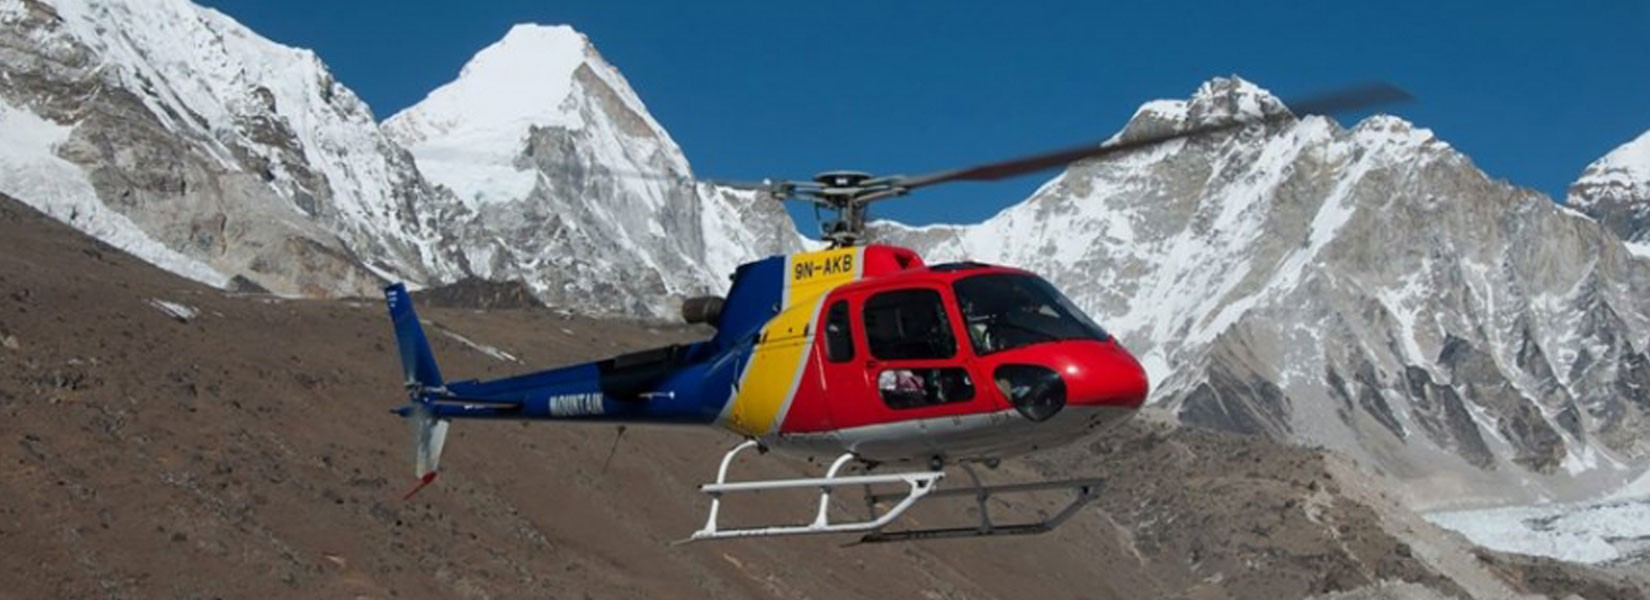 Nepal Himalaya Helicopter Tour